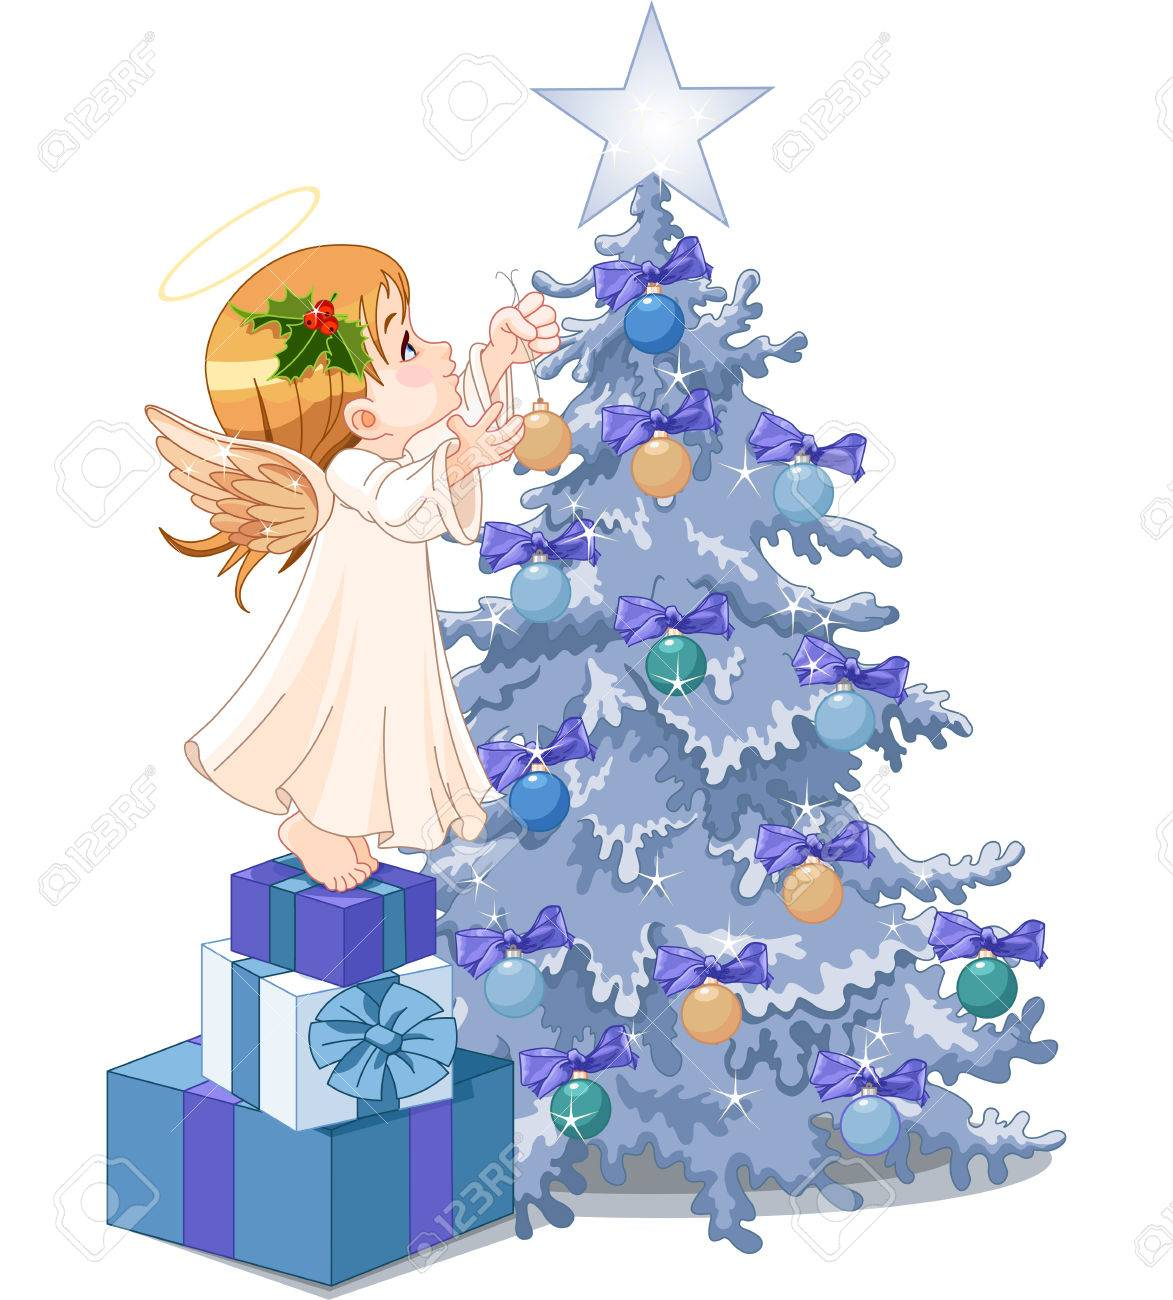 Christmas Angel Decorating Christmas Tree Royalty Free Cliparts Vectors And Stock Illustration Image 23873028